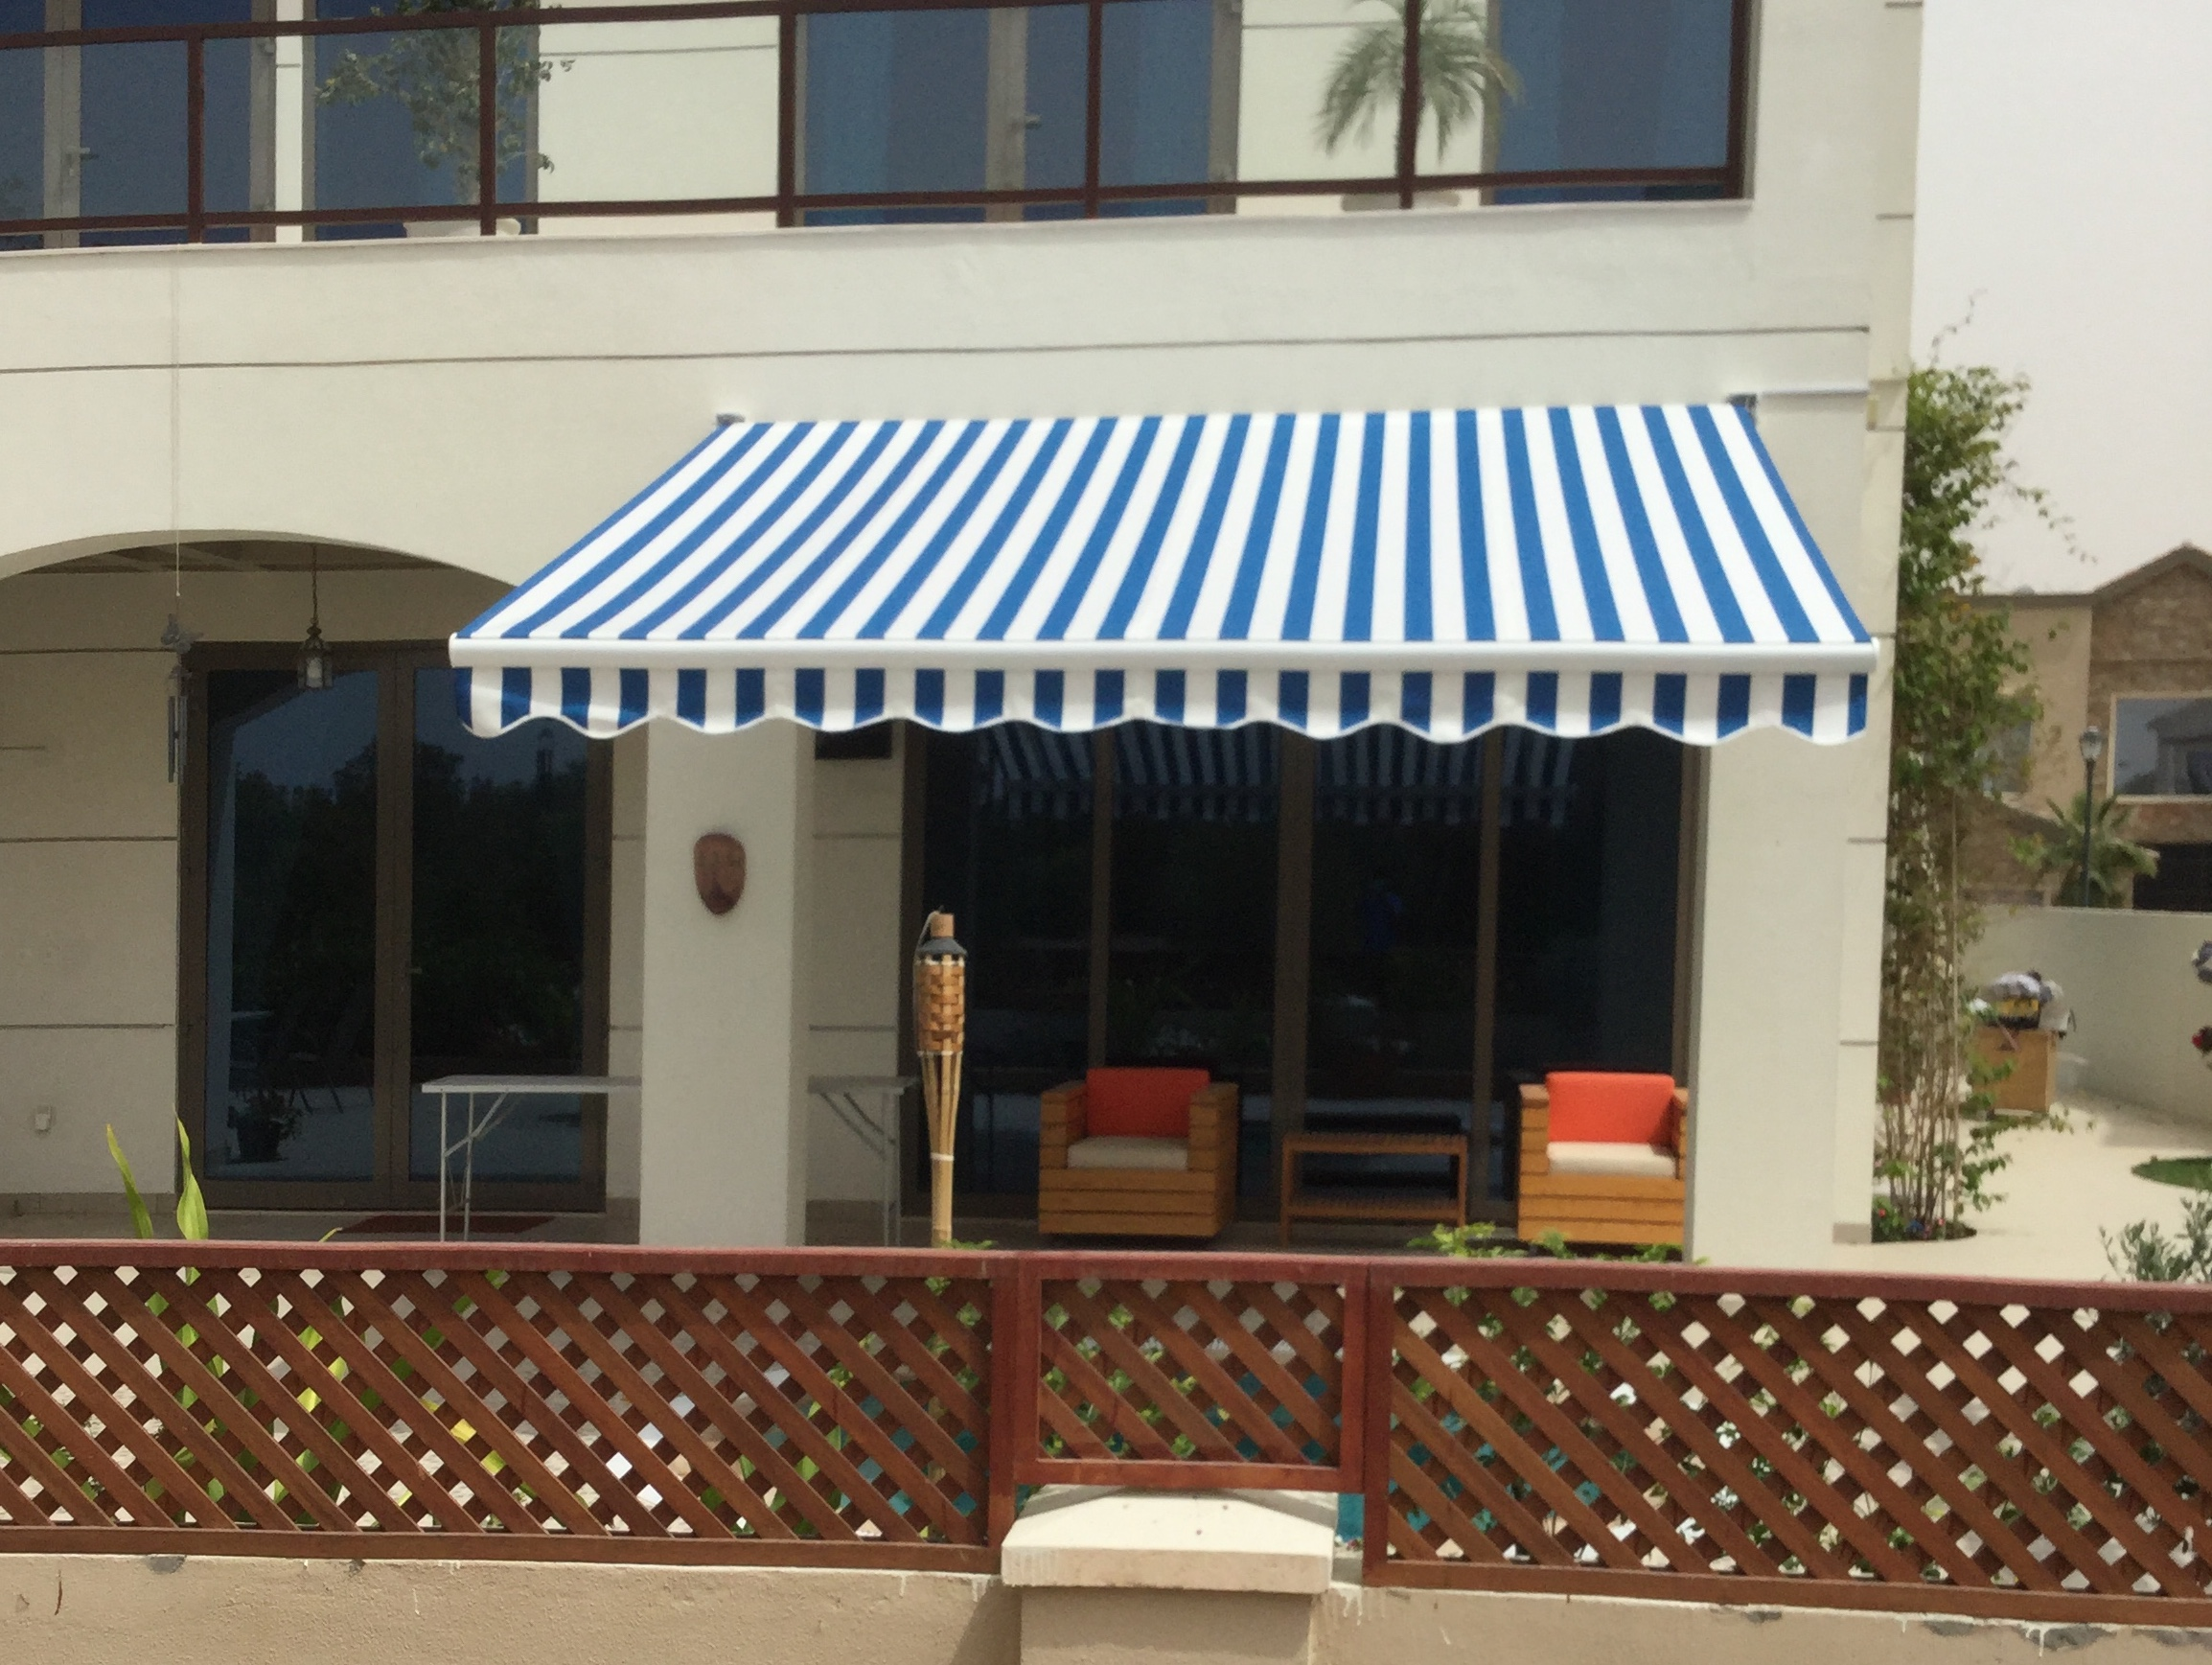 Awning in blue and white